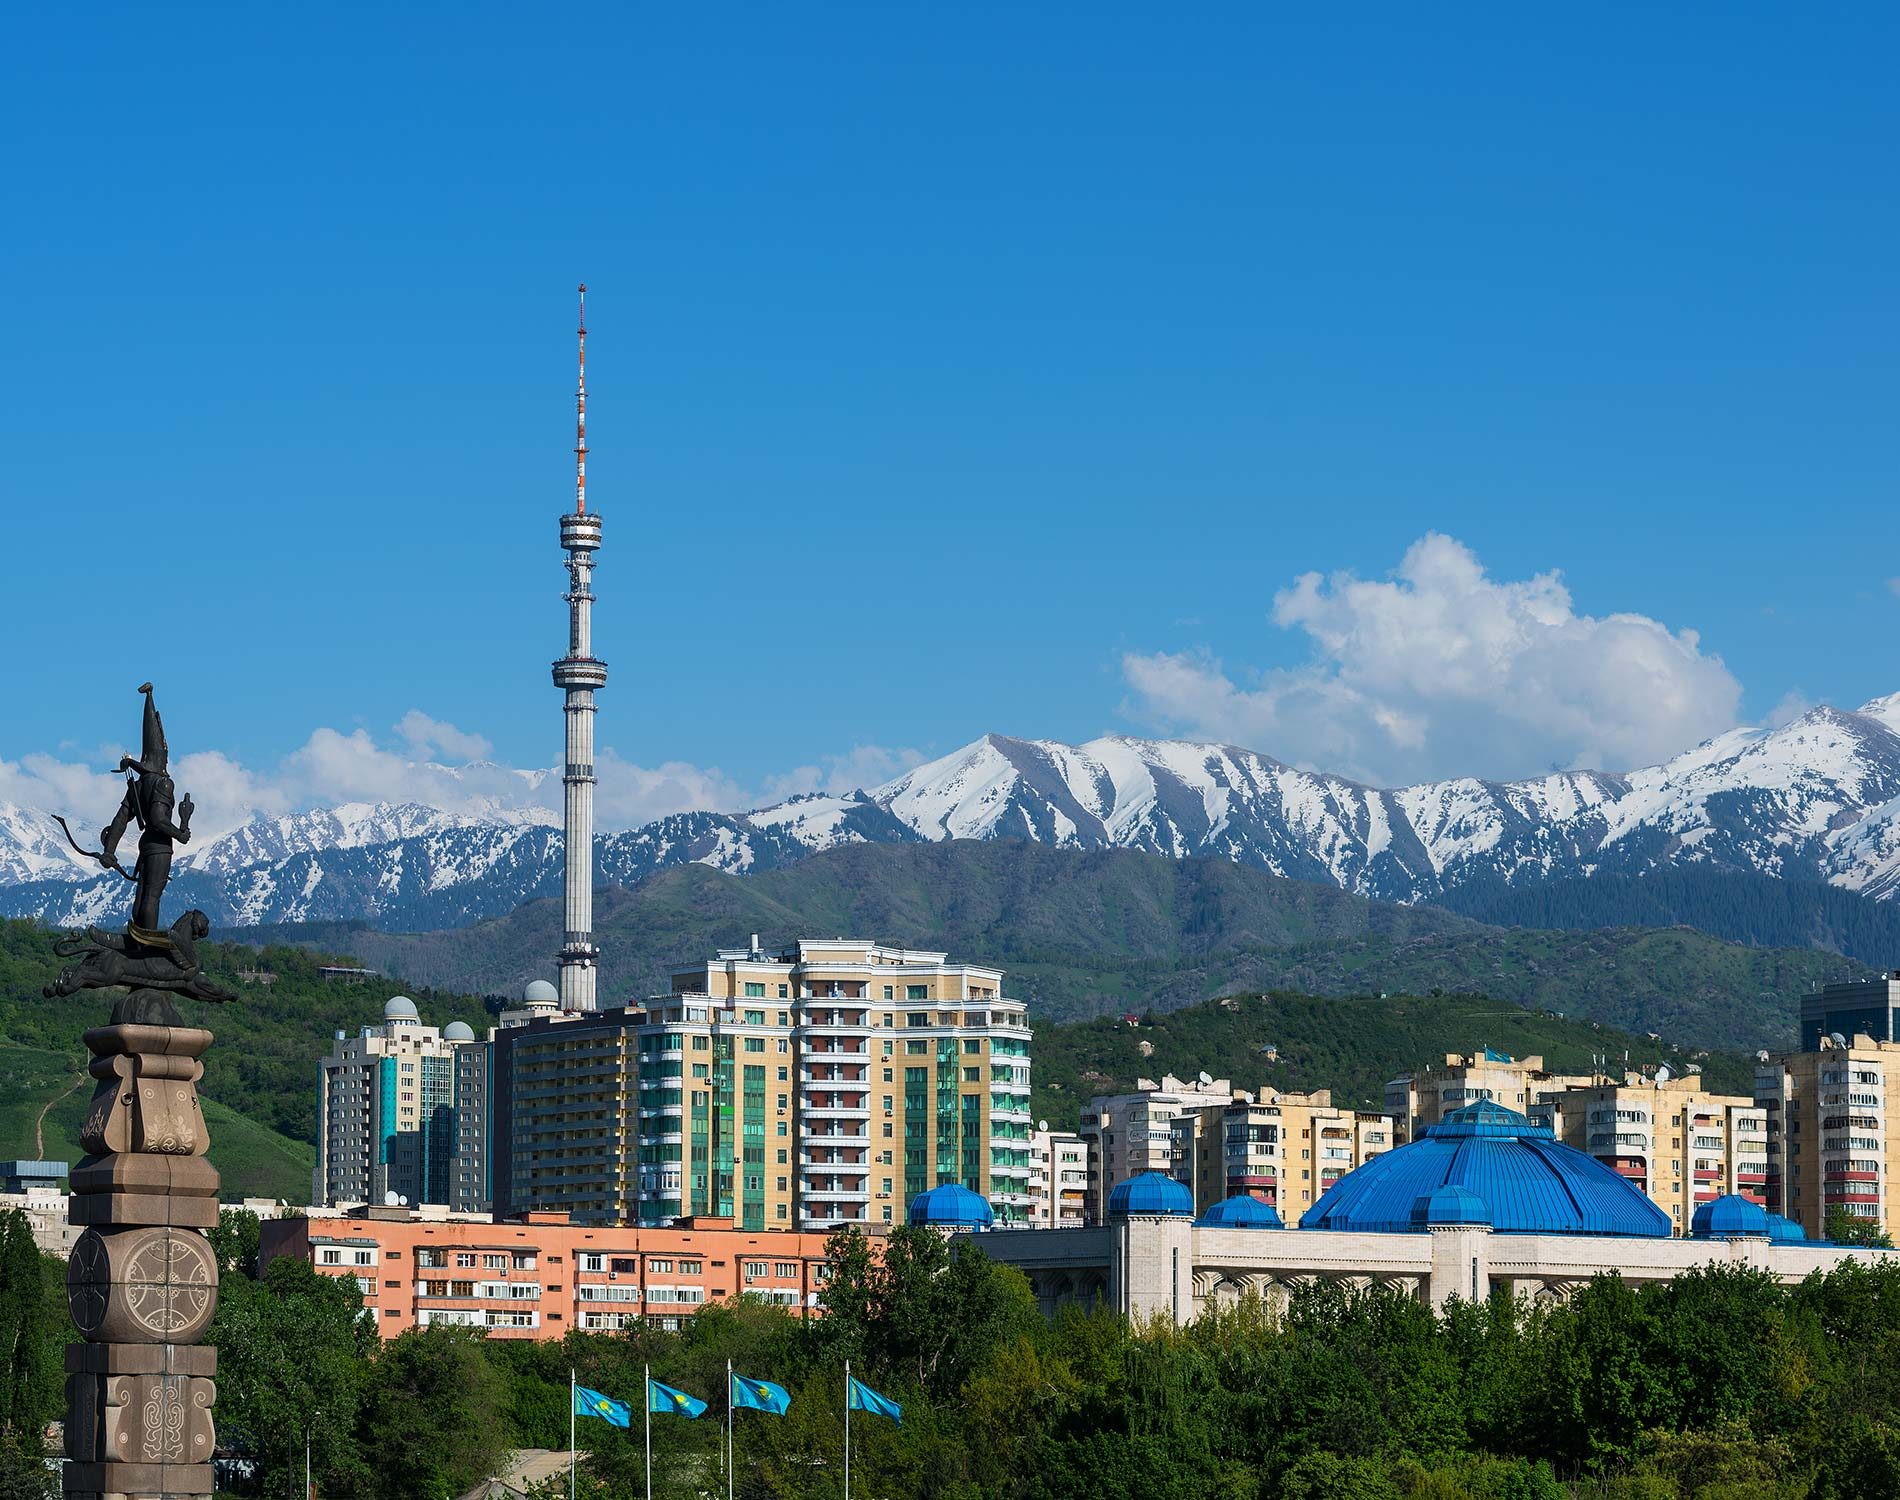 /-/media/images/website/background-images/offices/almaty/almaty_web.jpg